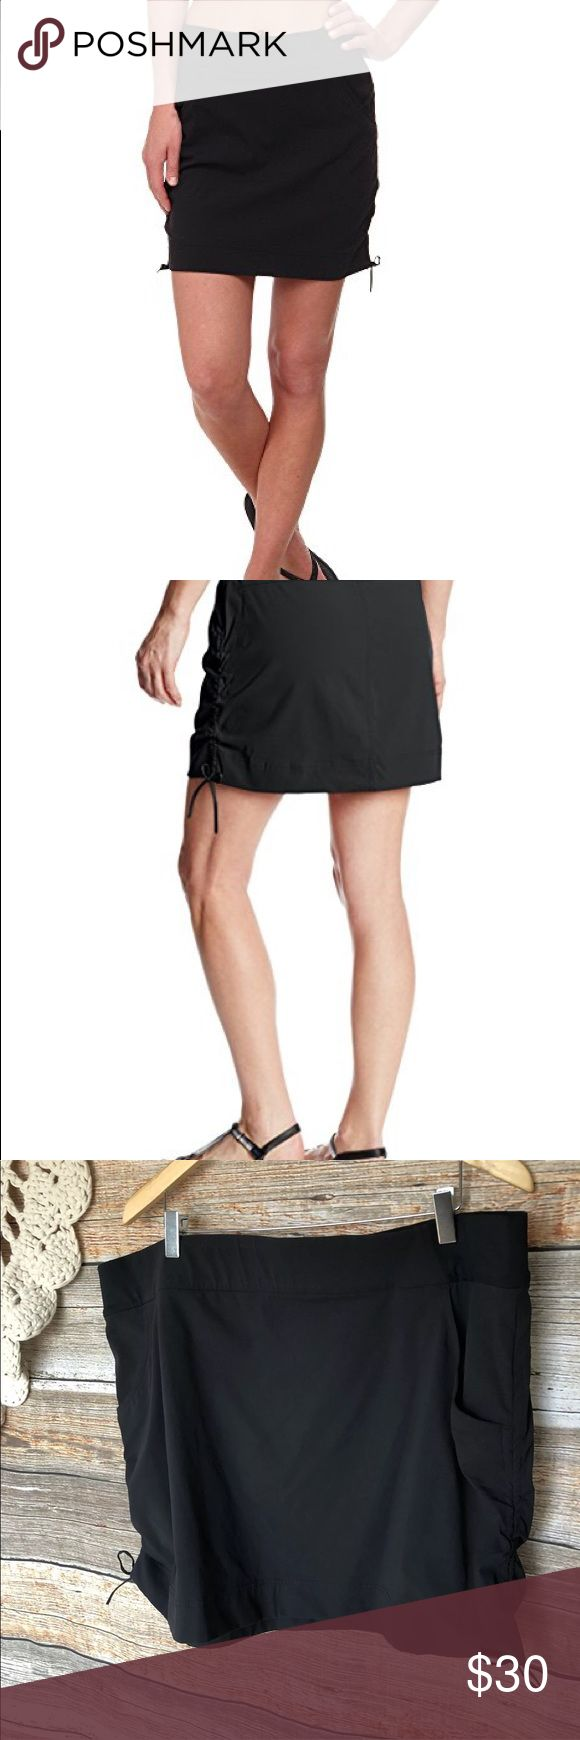 "Plus Size 2x Anytime Casual Golf Tennis Skirt 42"" Columbia  Sportswear Company  Anytime Casual Skort  Omni Shield  Advance Repellency  Side Drawstring  Front Pockets.  Body: 96% Nylon 4% Elastane  Shield: 85% Polyester 15% Elastane  Lining: 85% Polyester 15% Elastane   Hard to find Size: 2X  Waist:42"" un-stretched 48"" stretched  Hips around:50""  Length:18""  Retailed for $60 at Macy's last year. Columbia Skirts Mini"